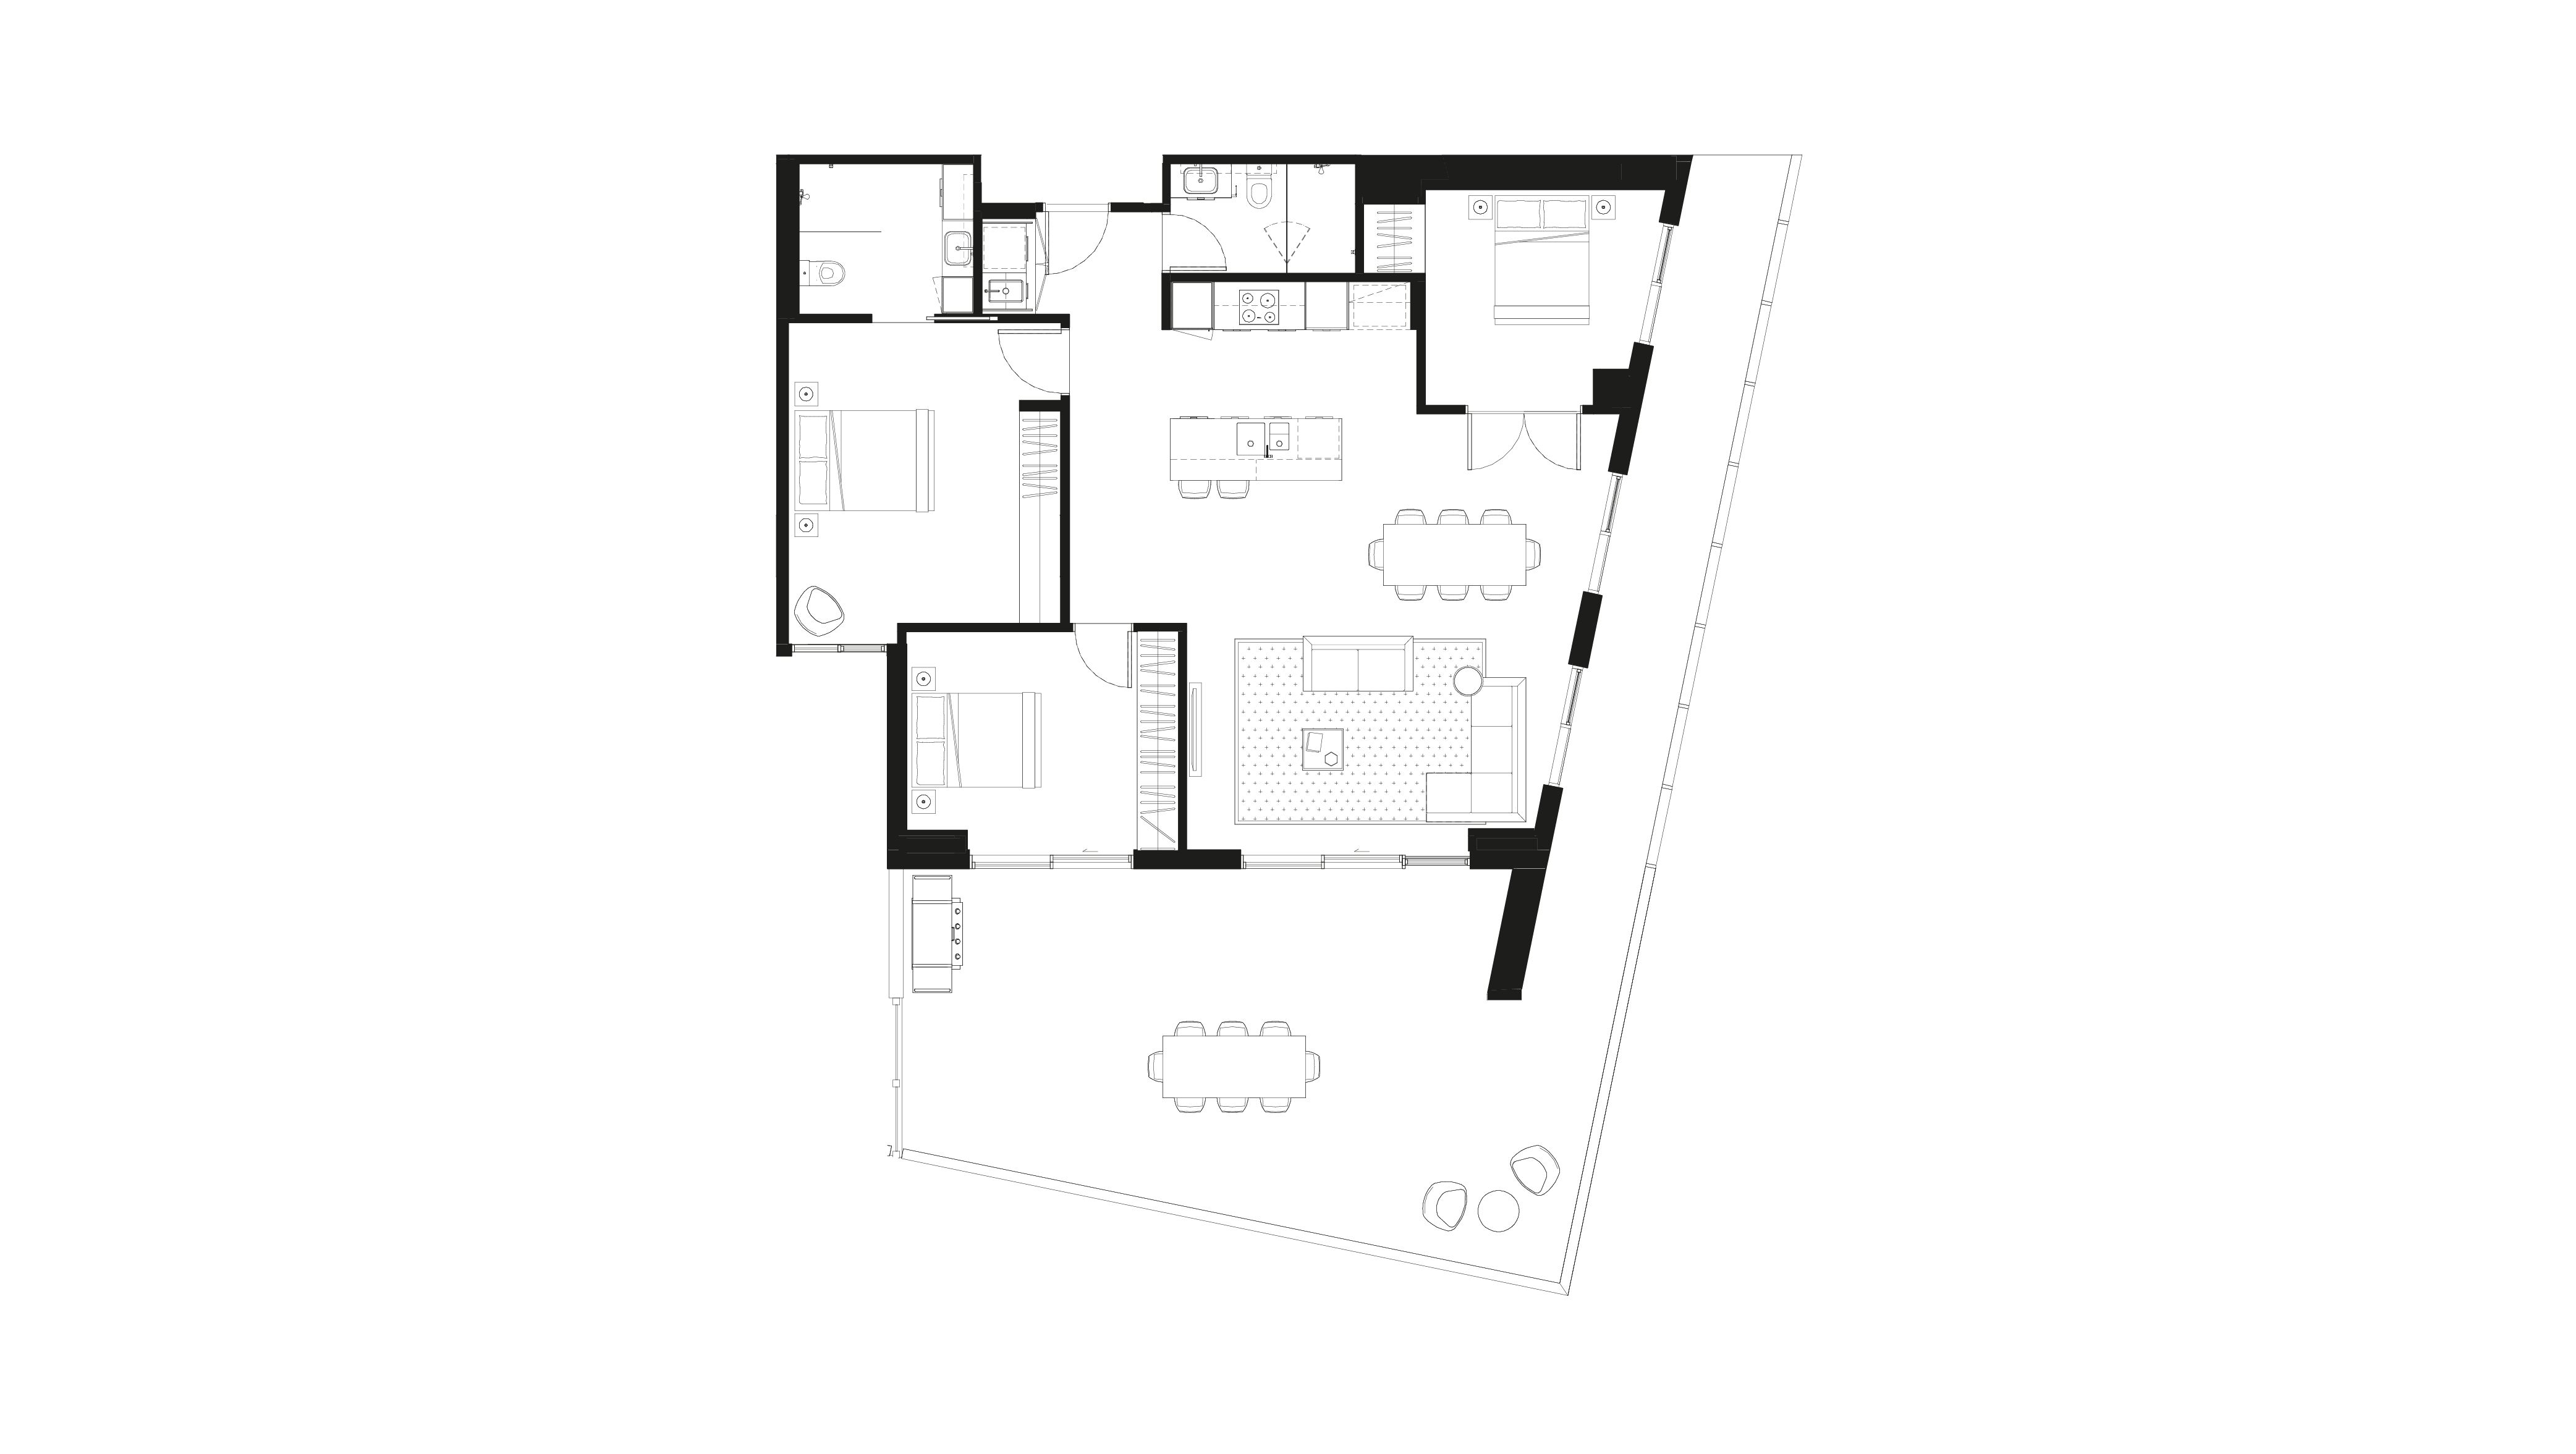 Floor plan of apartment 1.08 at The Orchards, featuring three bedrooms, two bathrooms and large balcony